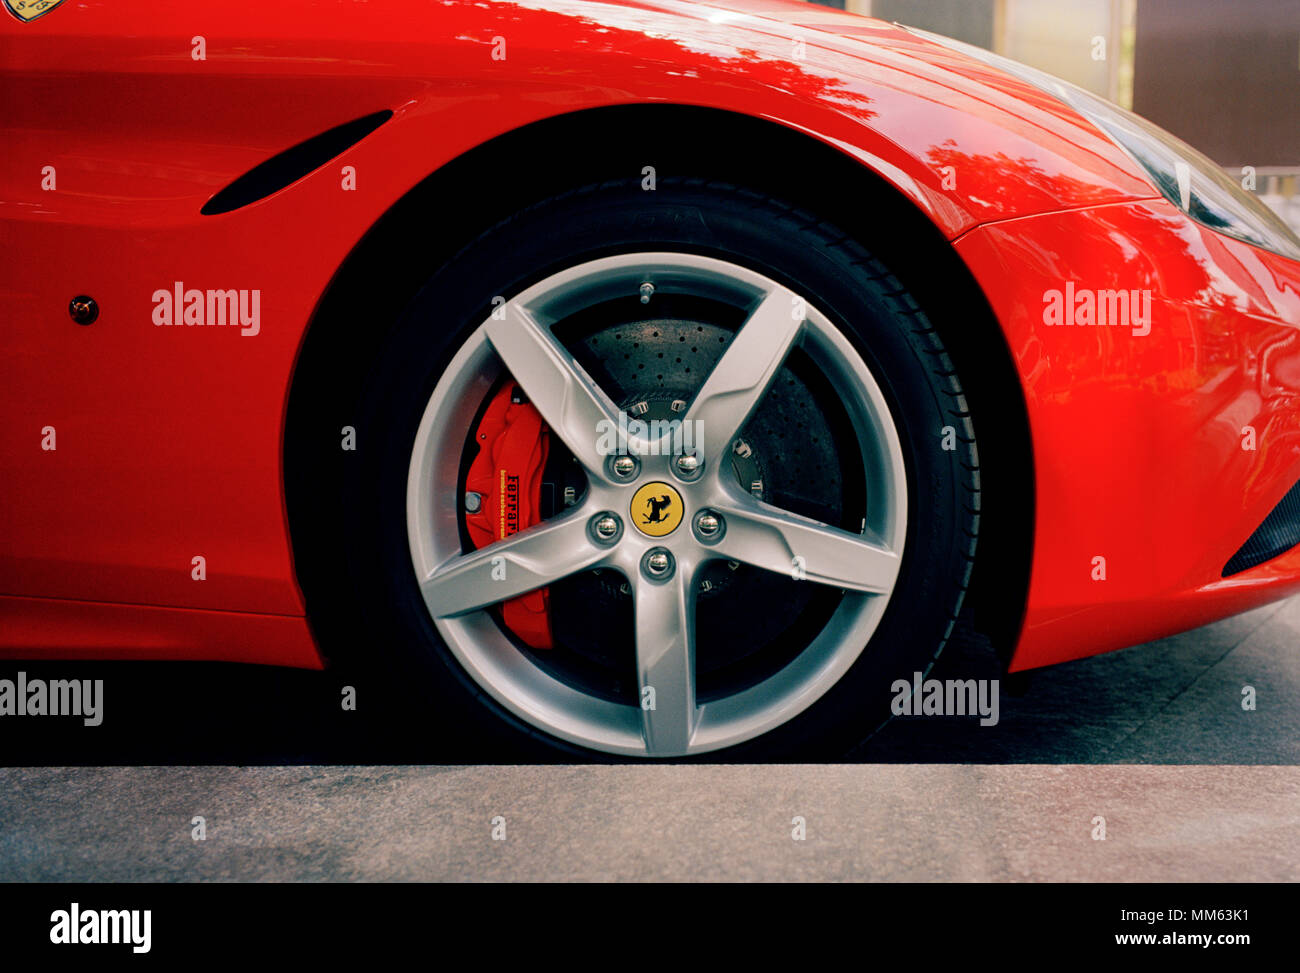 Super Cars And Rich Stock Photos Amp Super Cars And Rich Stock Images Alamy